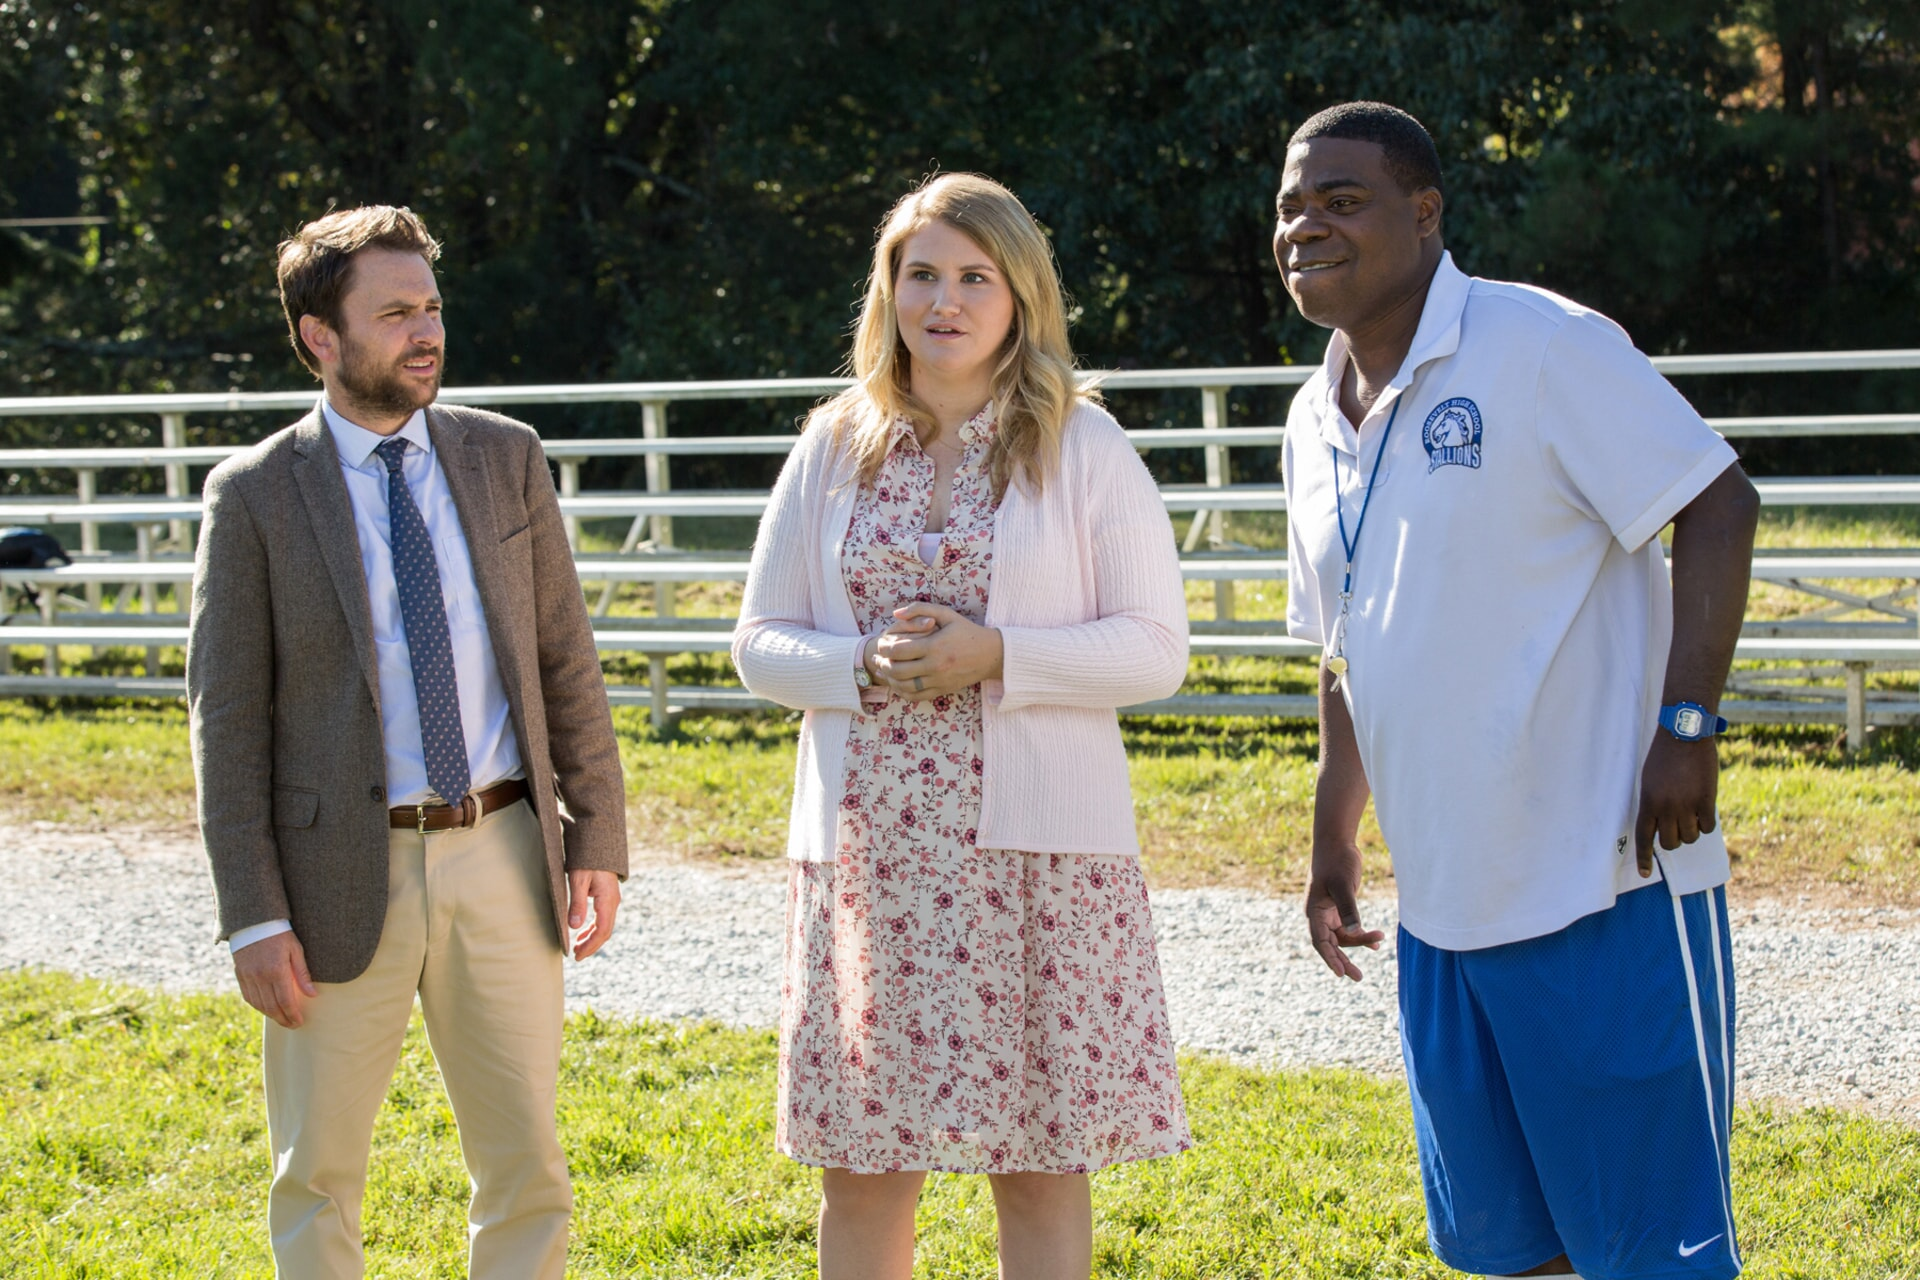 """CHARLIE DAY as Andy Campbell, JILLIAN BELL as Holly and TRACY MORGAN as Coach Crawford in the New Line Cinema and Village Roadshow Pictures comedy """"FIST FIGHT,"""" a Warner Bros. Pictures release."""